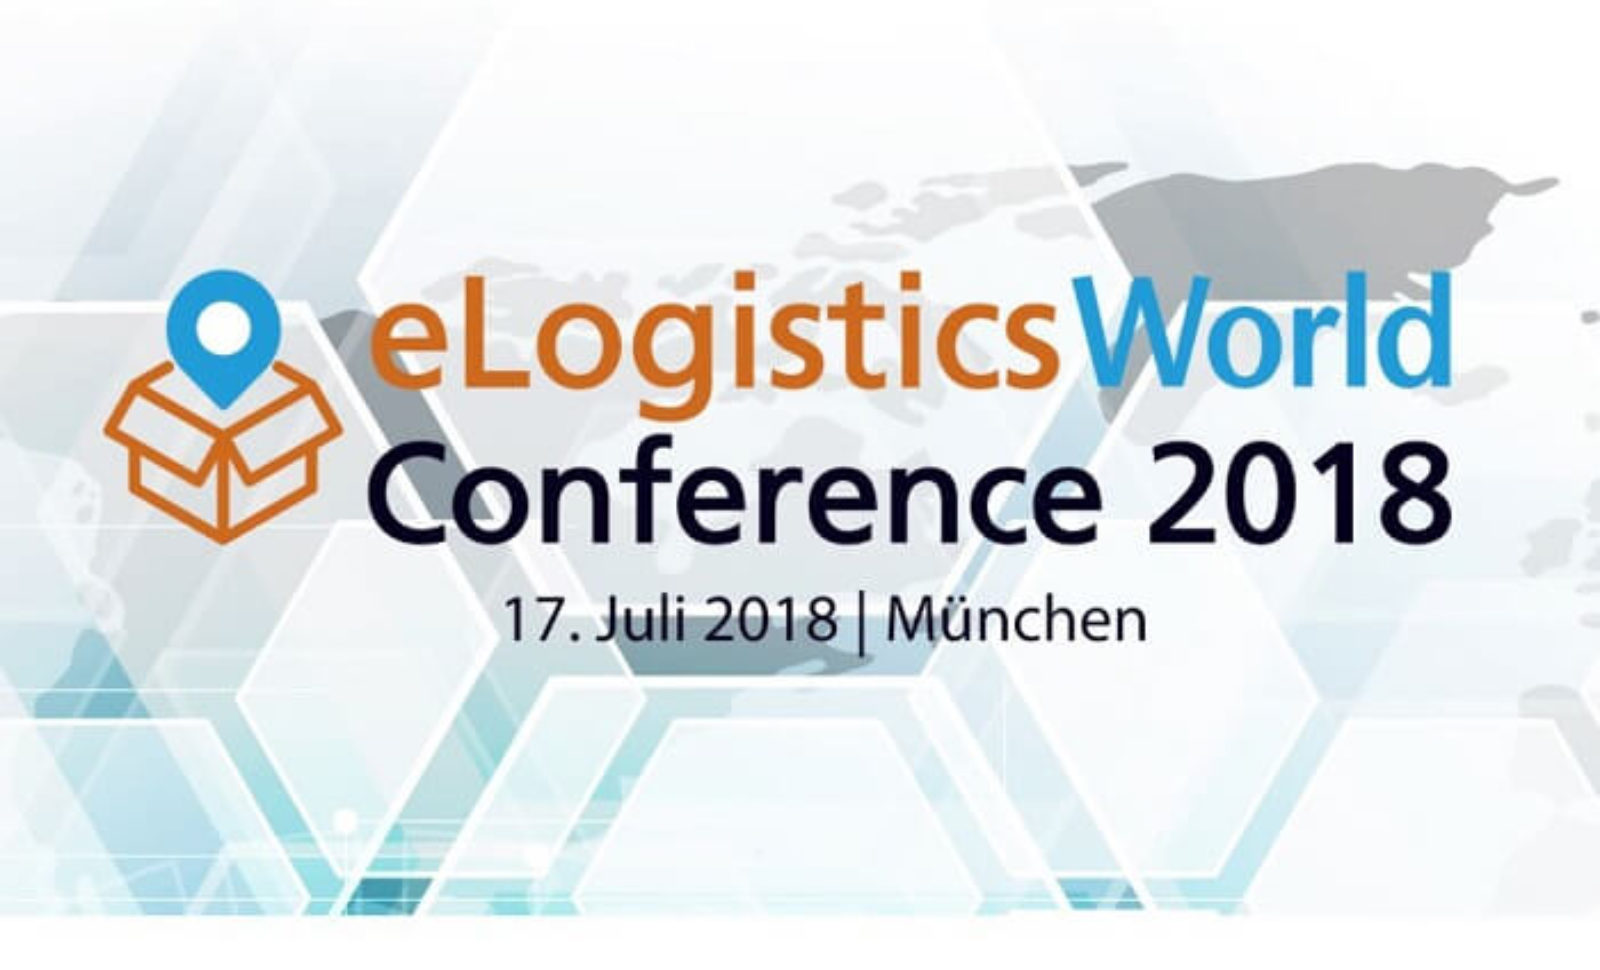 eLogistics World Conference: Logistik und Fulfillment im Fokus